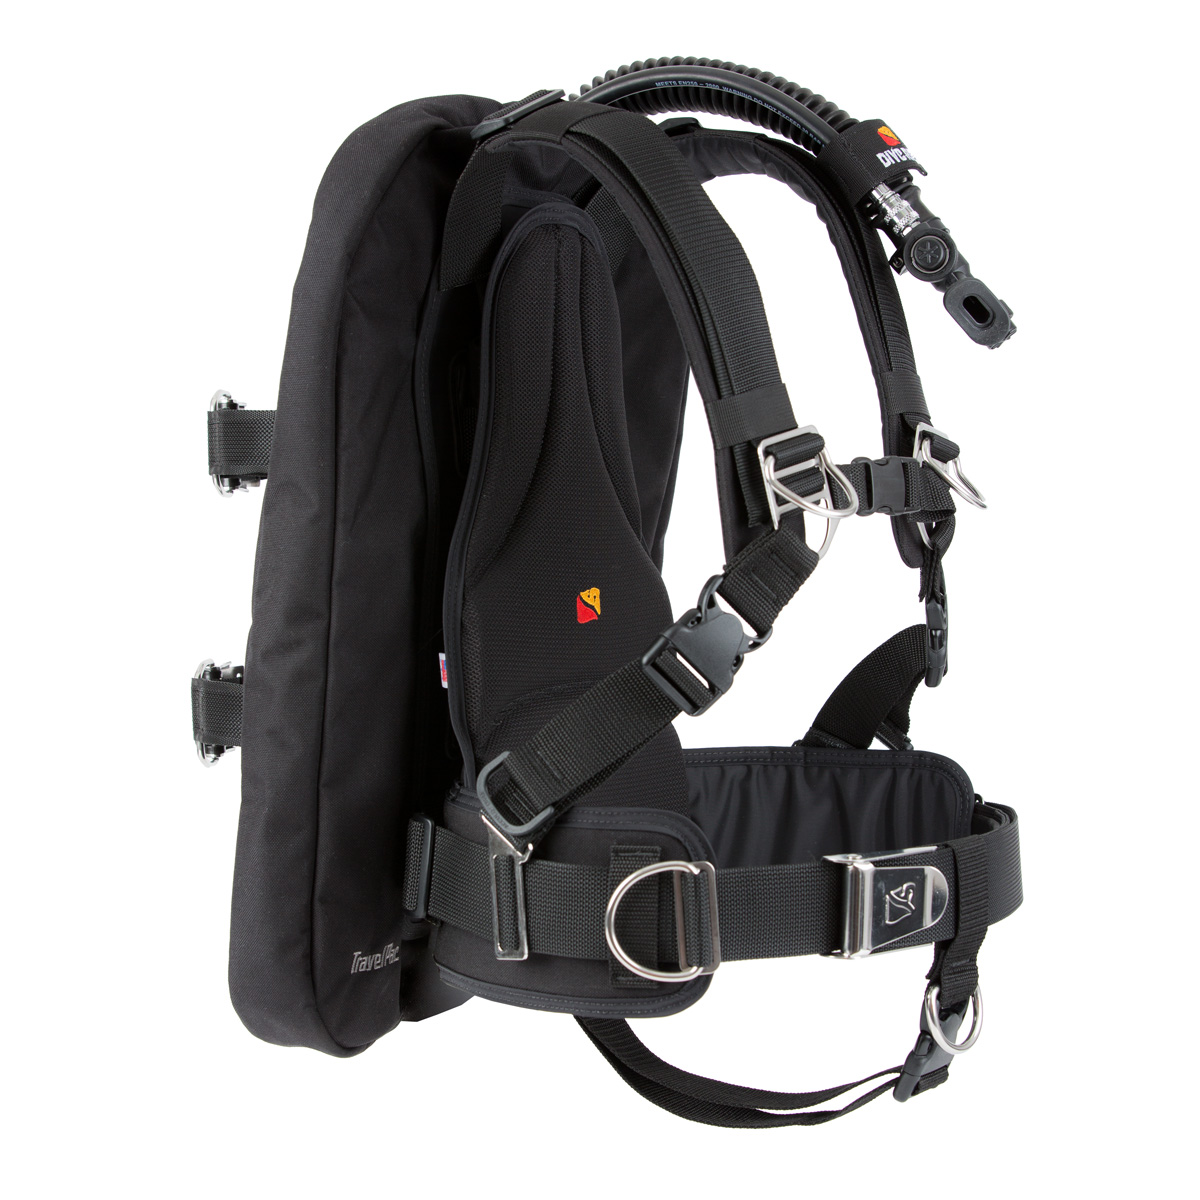 Komplekt Travelpac Dive Rite further Buoyancy  pensators All further Dive Rite Introduces Youth Sized Bcd furthermore Wings as well diverite. on travelpac bcd